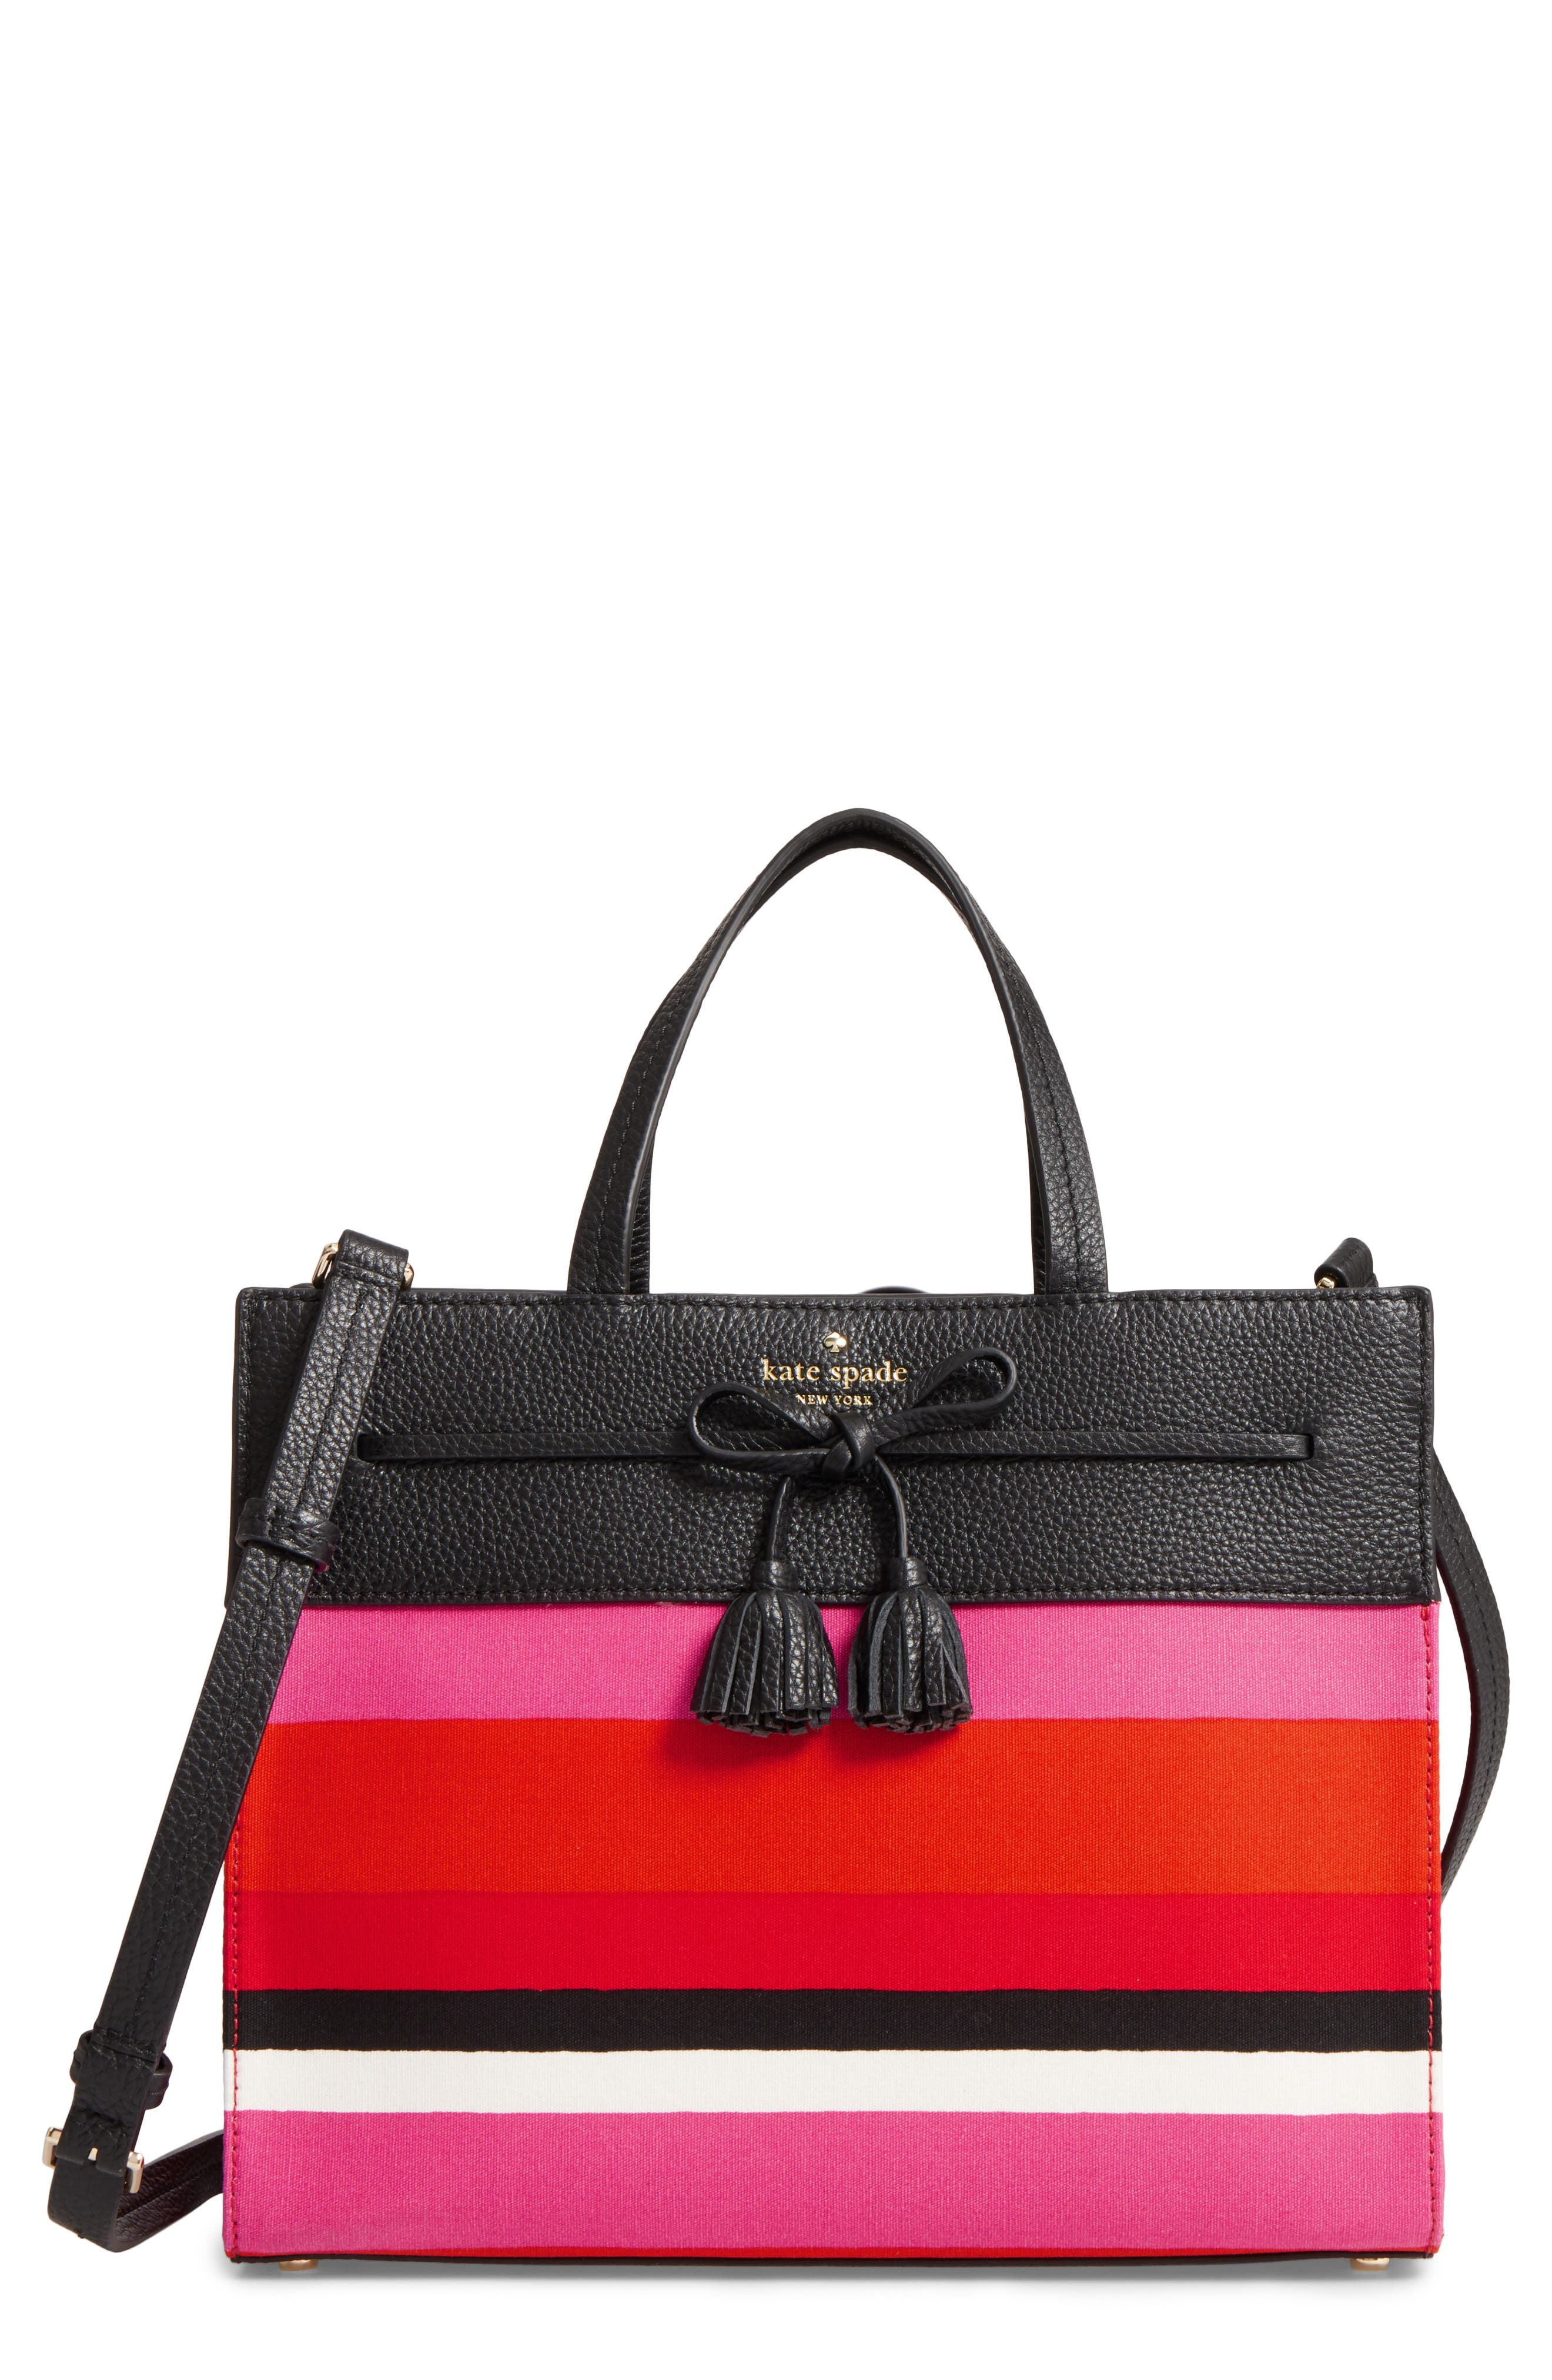 KATE SPADE NEW YORK hayes street - isobel tote